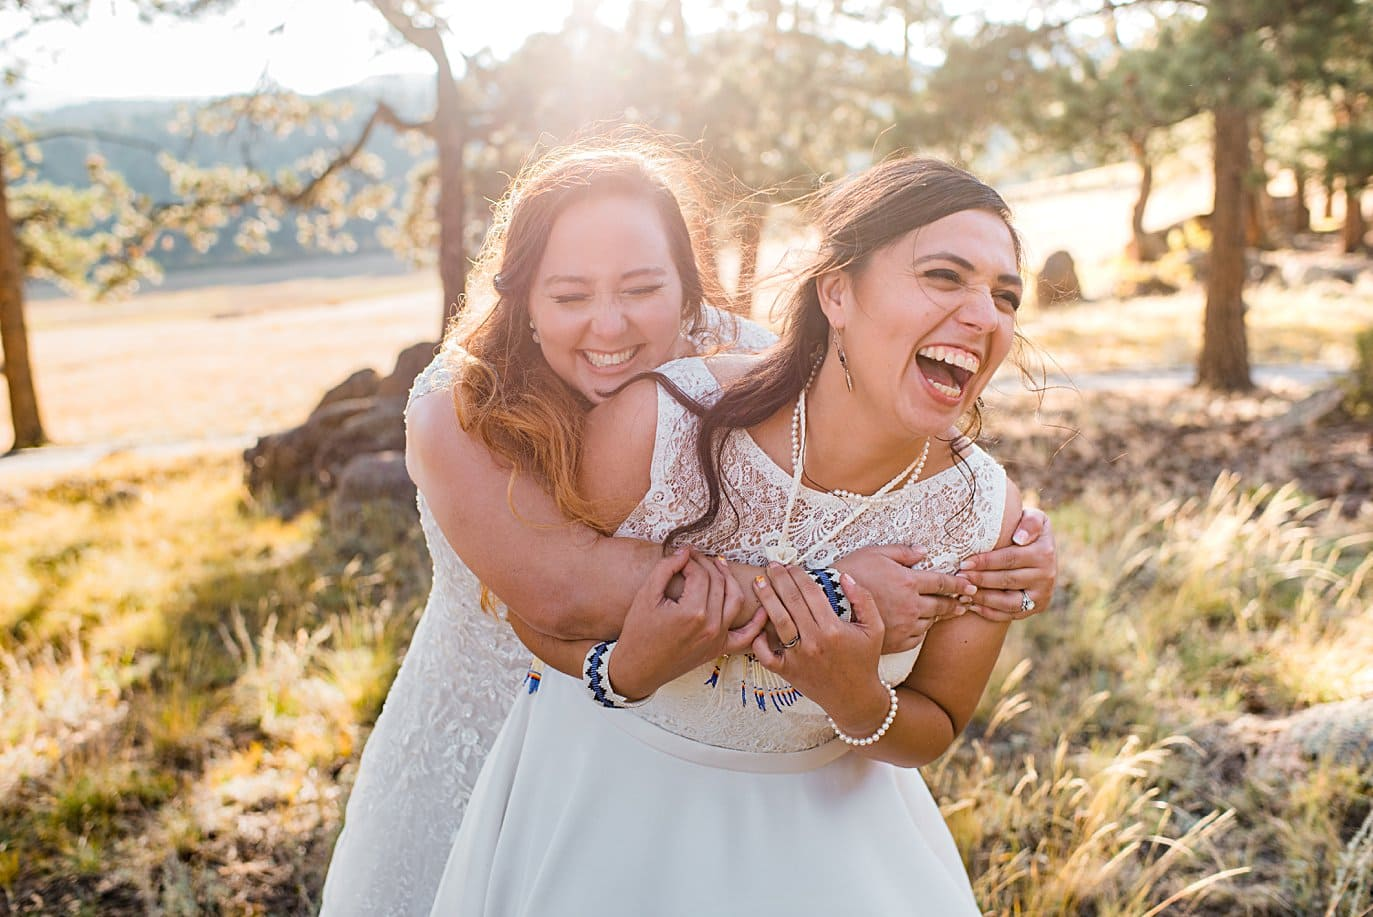 two brides in dresses intimate wedding ceremony at LGBT wedding by Colorado LGBT wedding photographer Jennie Crate